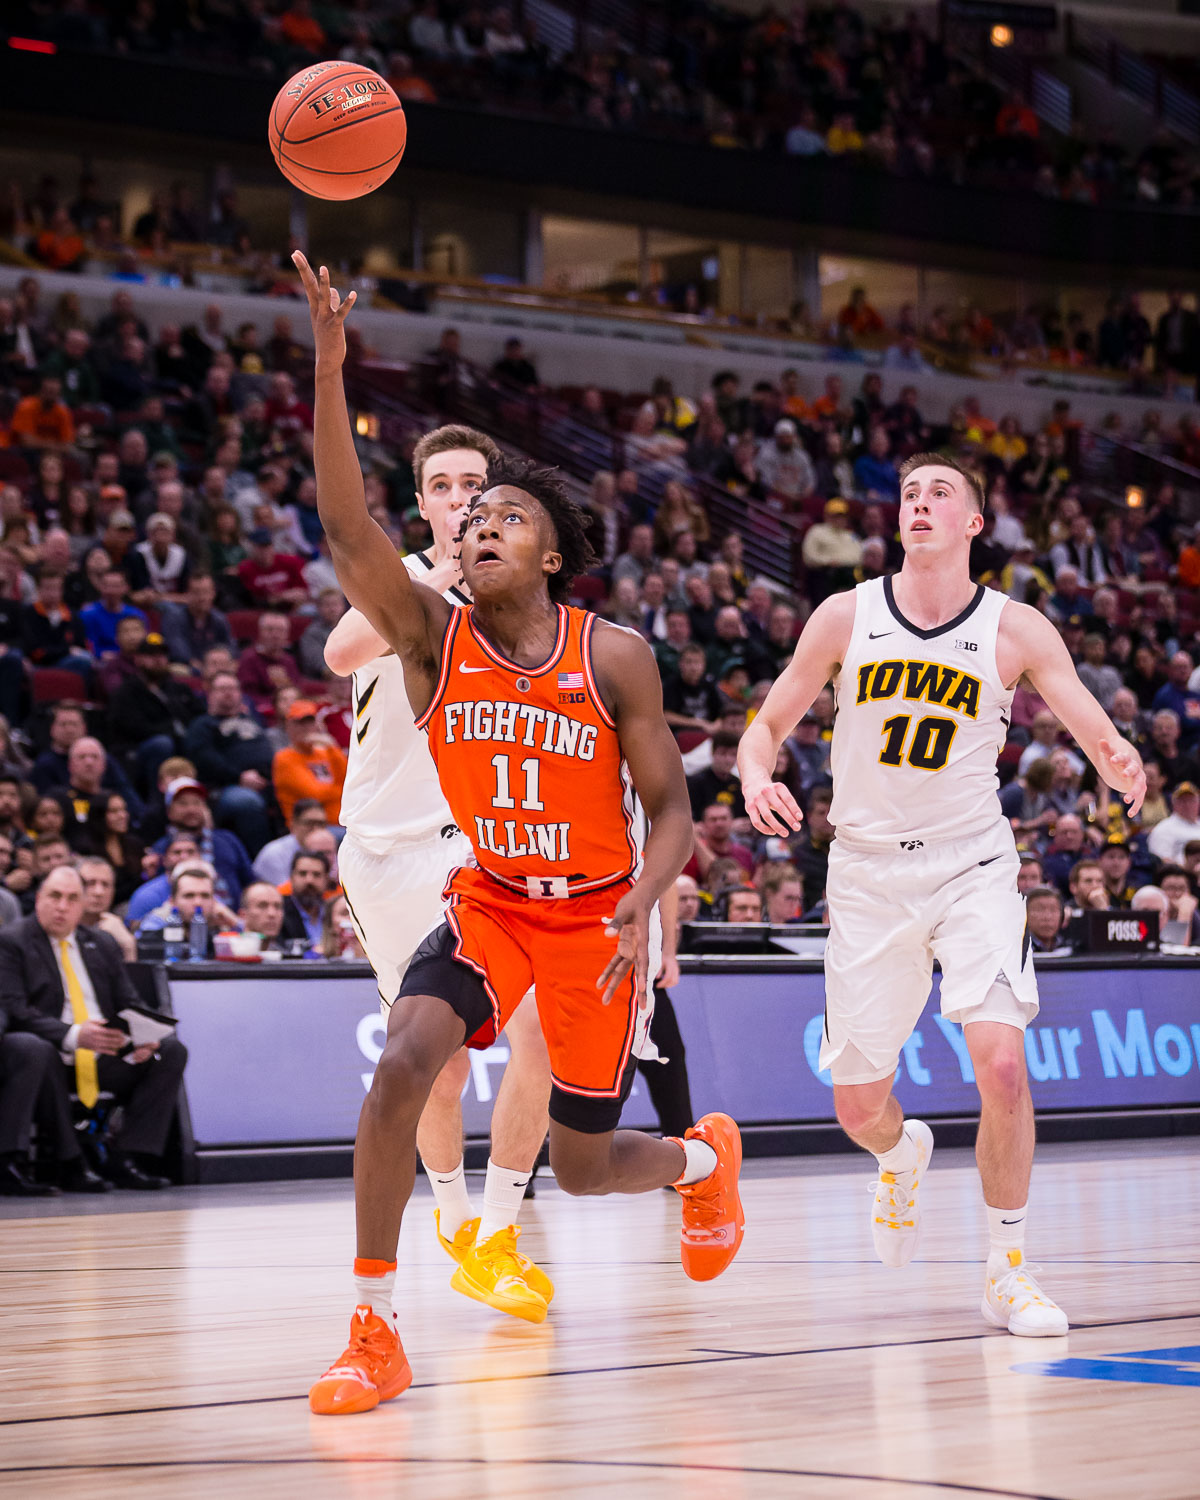 Illinois+guard+Ayo+Dosunmu+%2811%29+puts+up+a++layup+during+the+game+against+Iowa+in+the+second+round+of+the+Big+Ten+Tournament+at+the+United+Center+on+Thursday%2C+March+14.+The+Illini+lost+83-62.